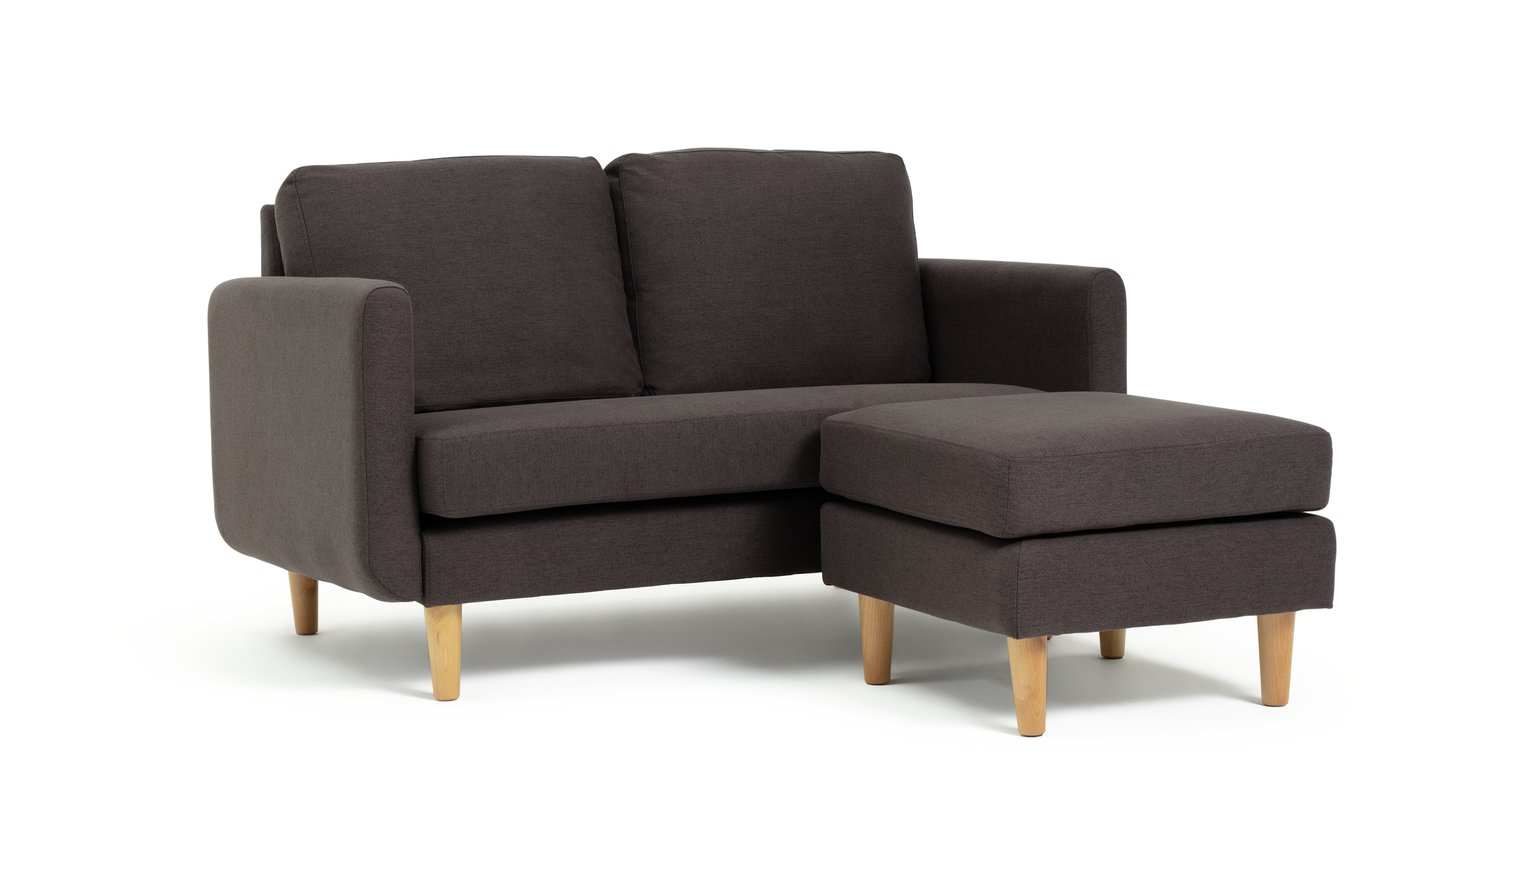 Argos Home Remi 2 Seater Fabric Chaise in a Box - Charcoal